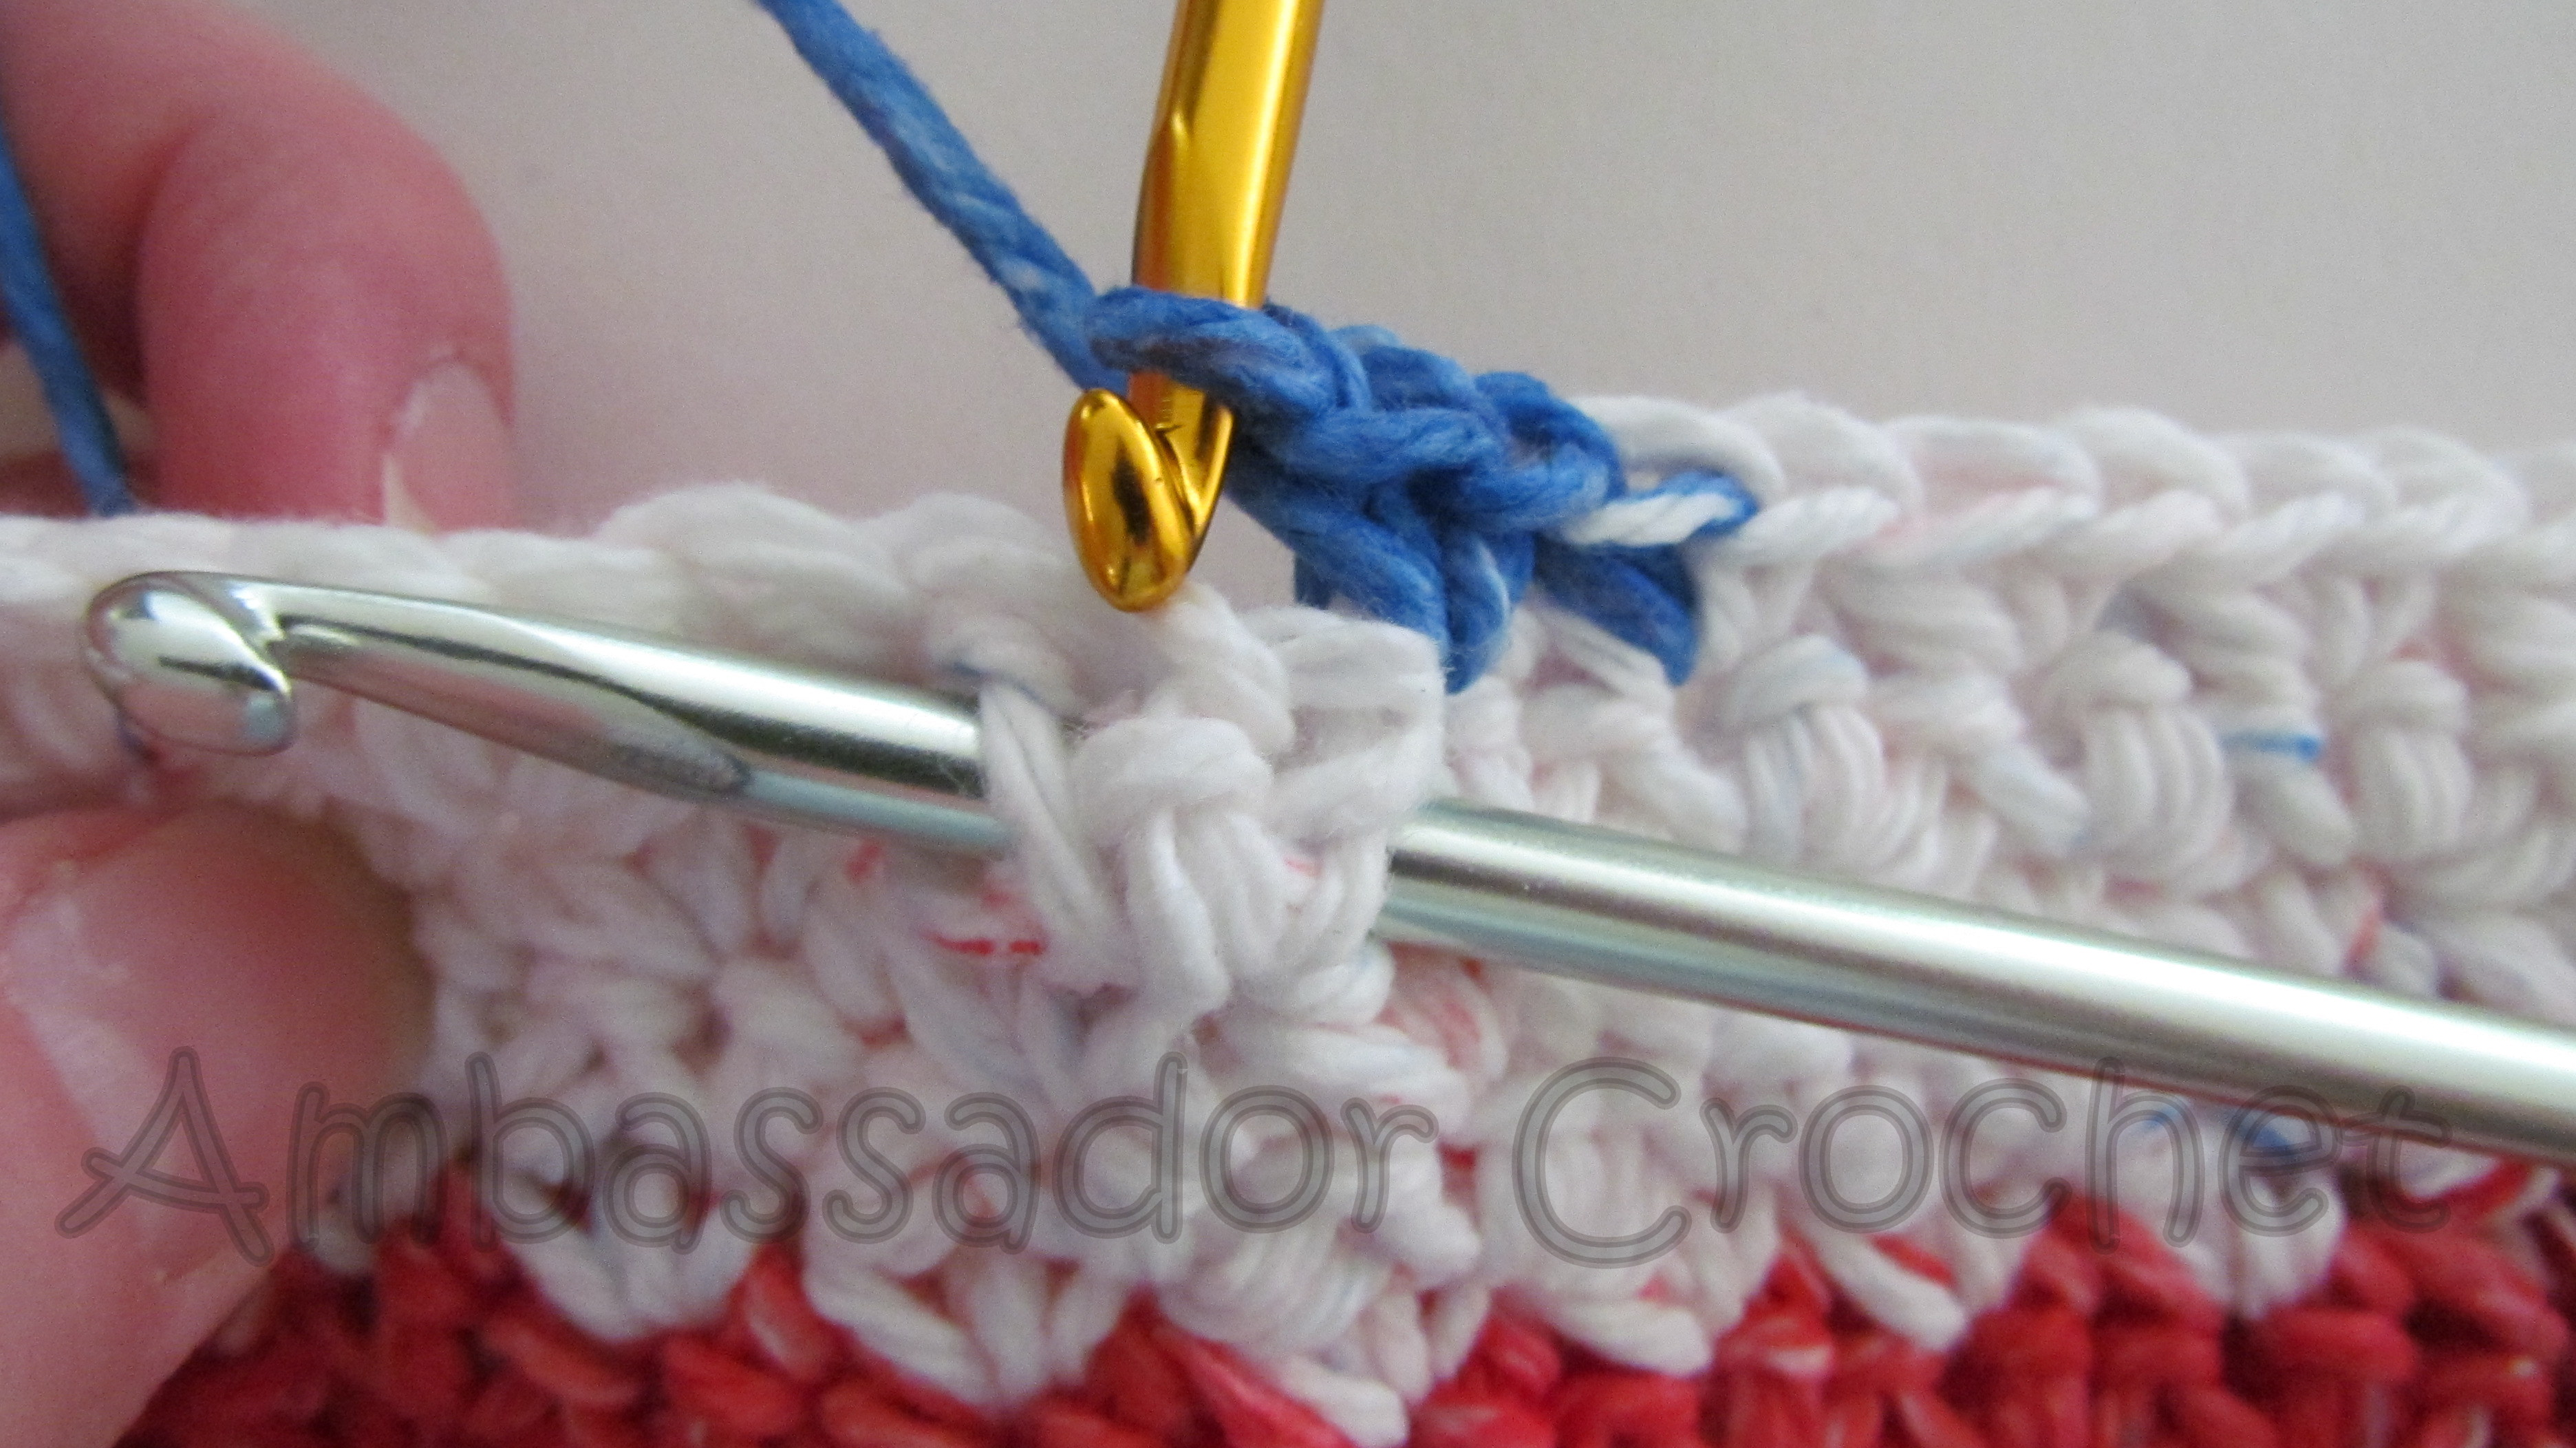 Crochet Stitches Grit : Crochet Grit Stitch Tutorial - Version 1 - Ambassador Crochet ...